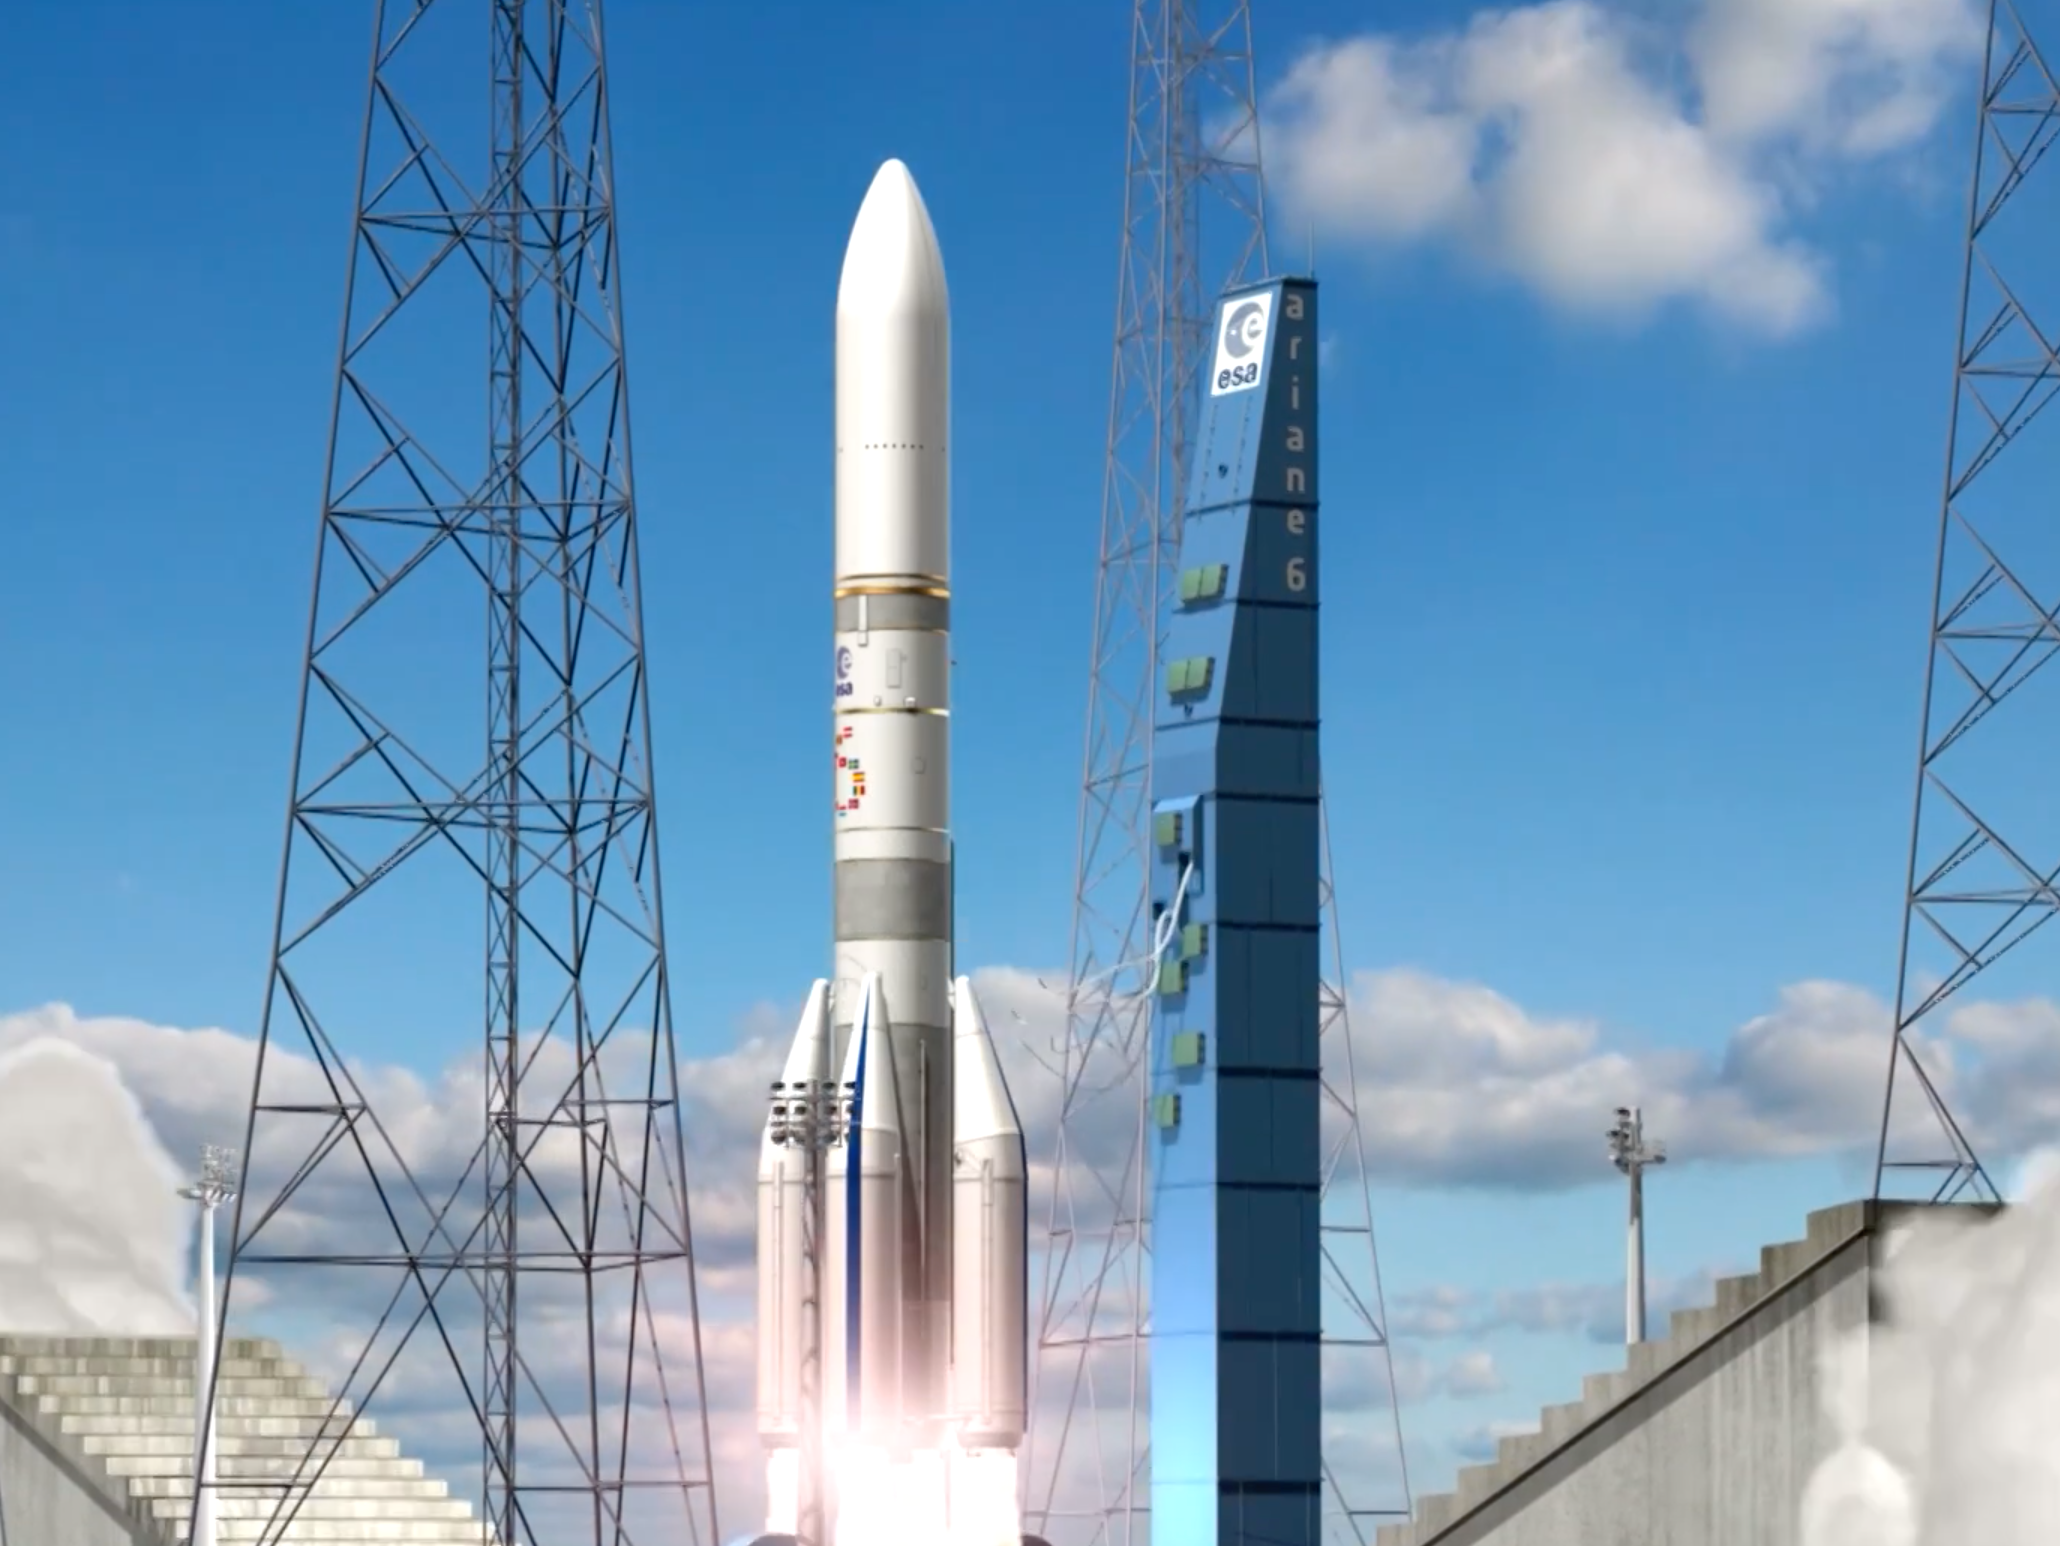 ESA's New Rocket is Incapable of Landing Back on Earth